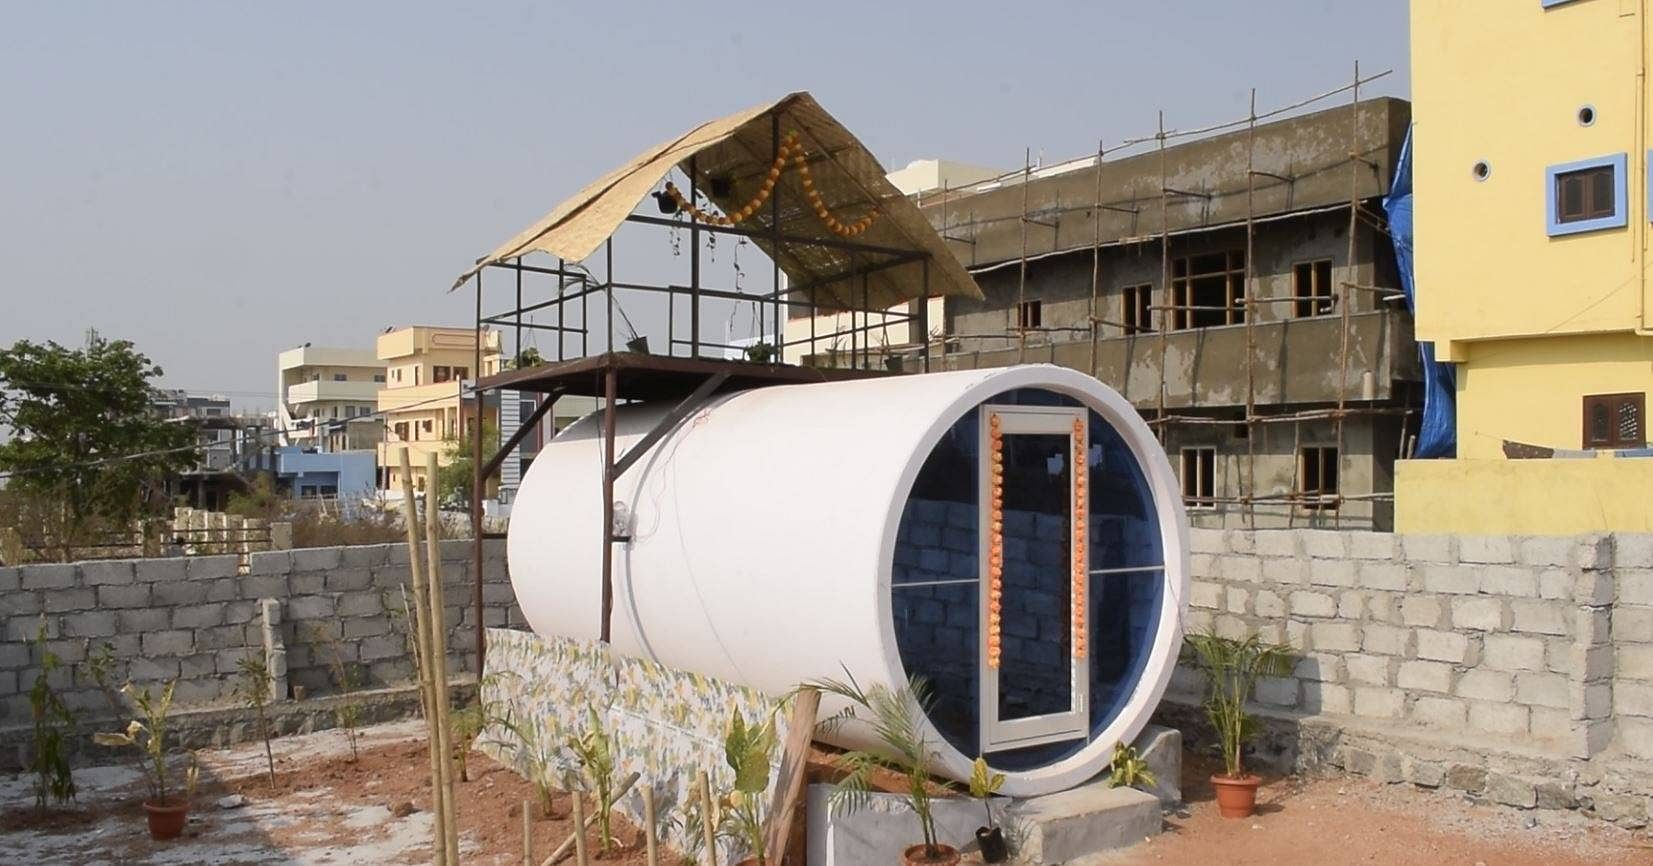 Low cost home from sewage pipe